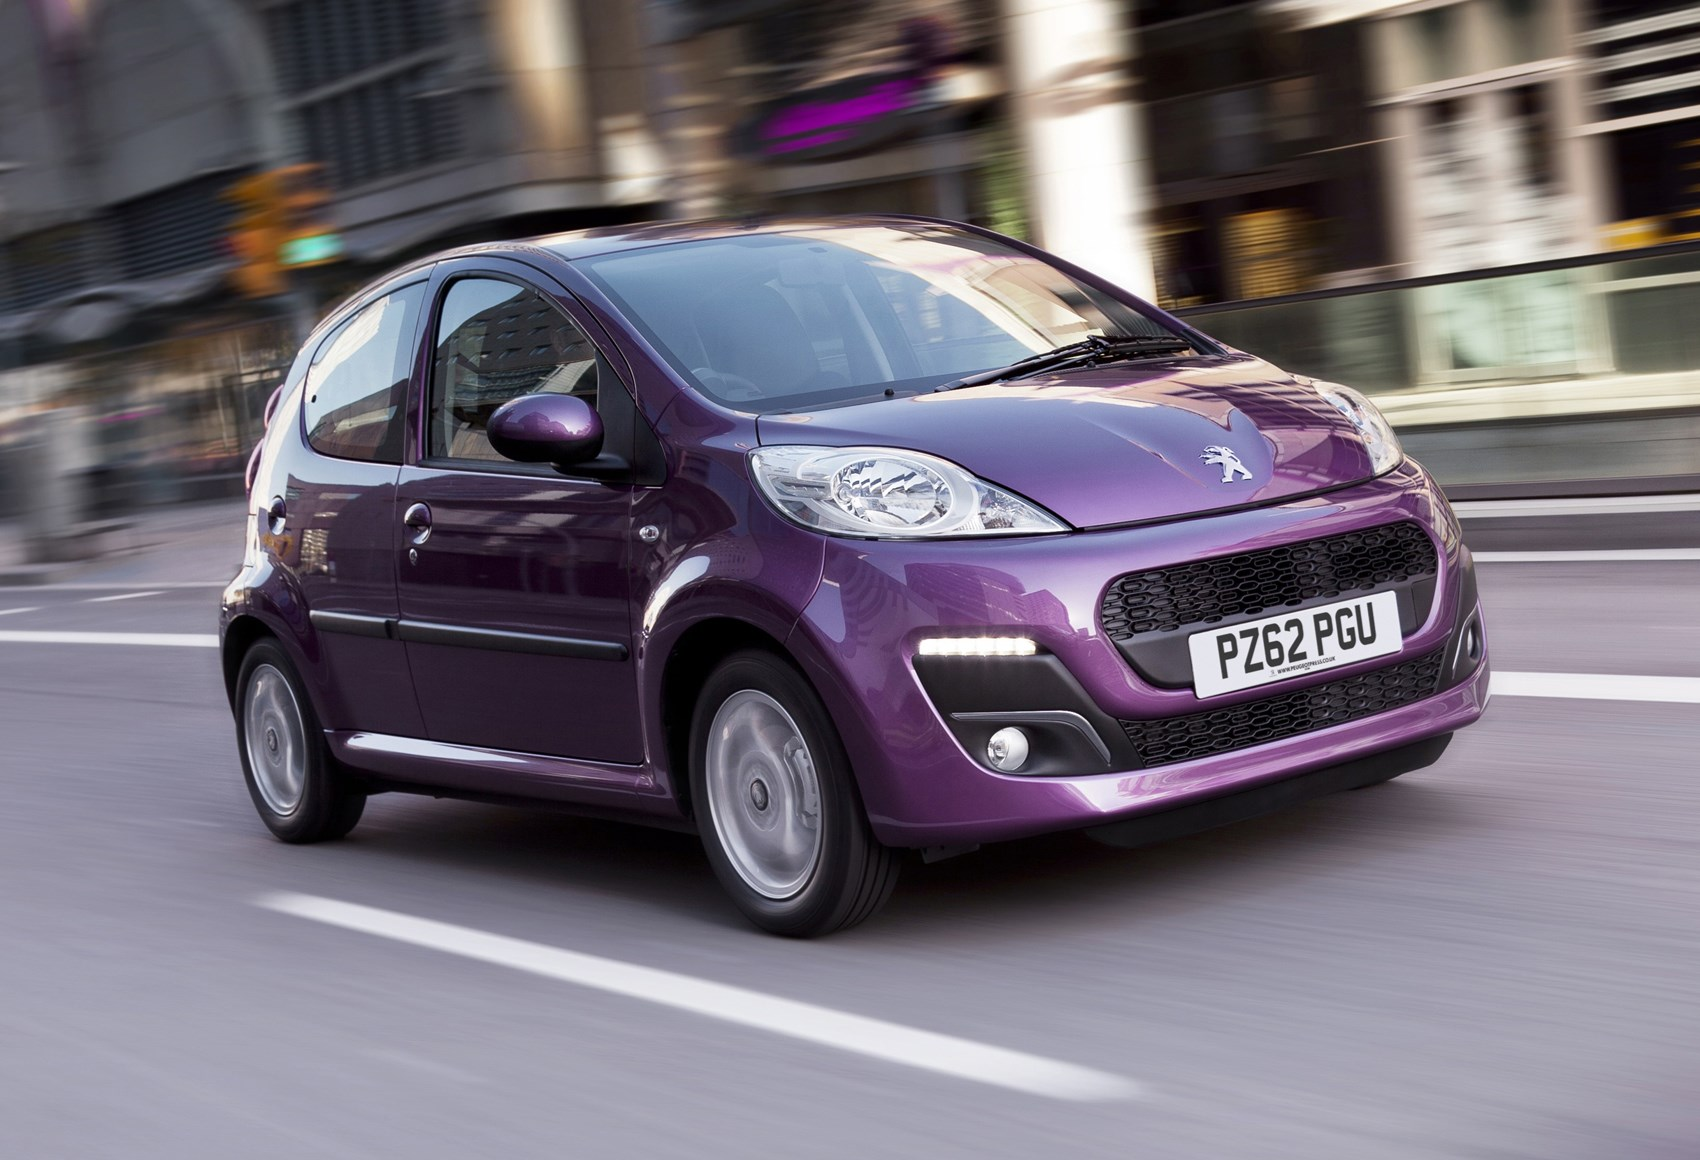 Click to enlarge image 07120159_peugeot_107.jpg